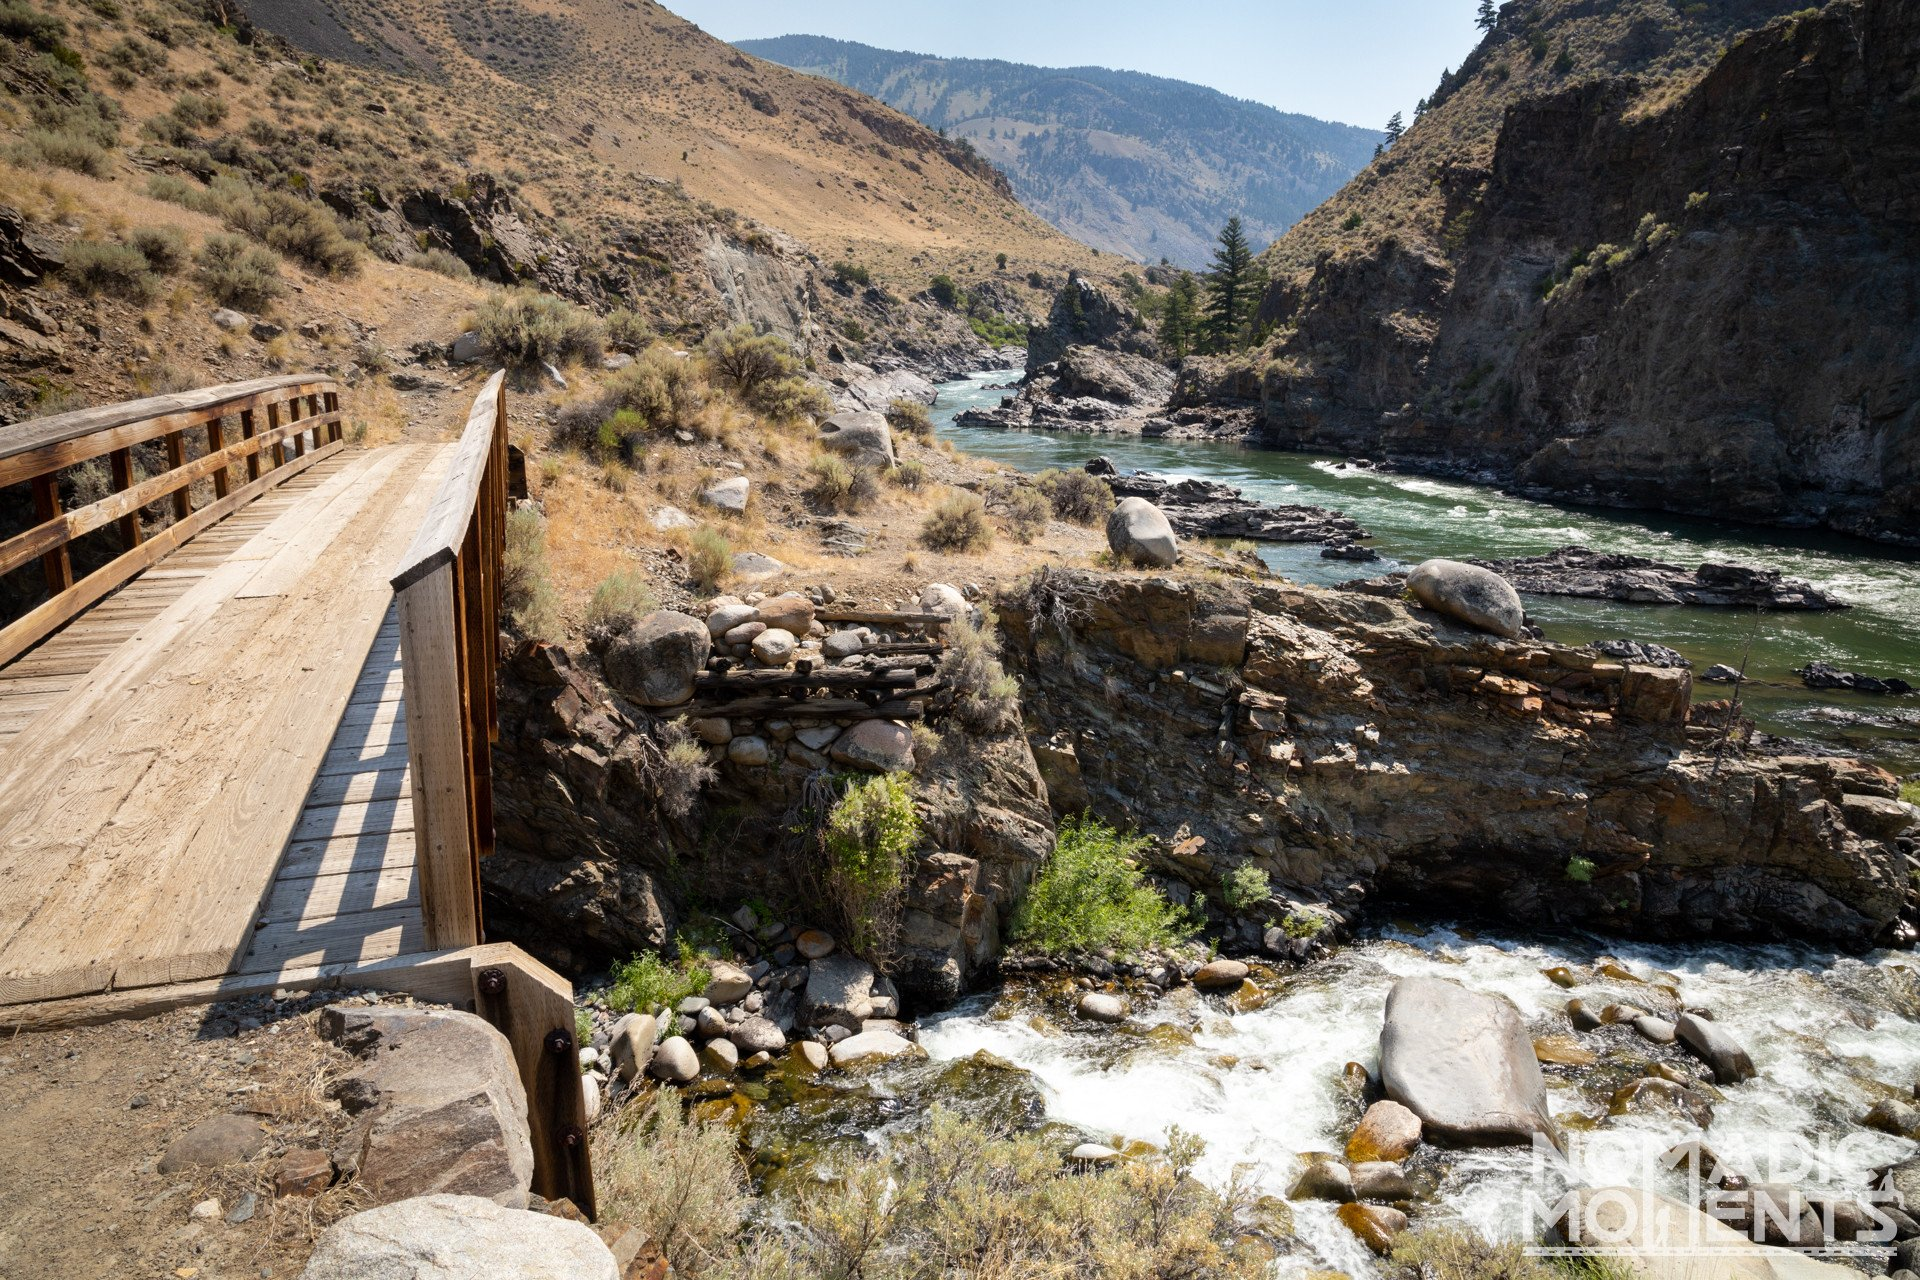 Bear Creek and the Yellowstone River Confluence